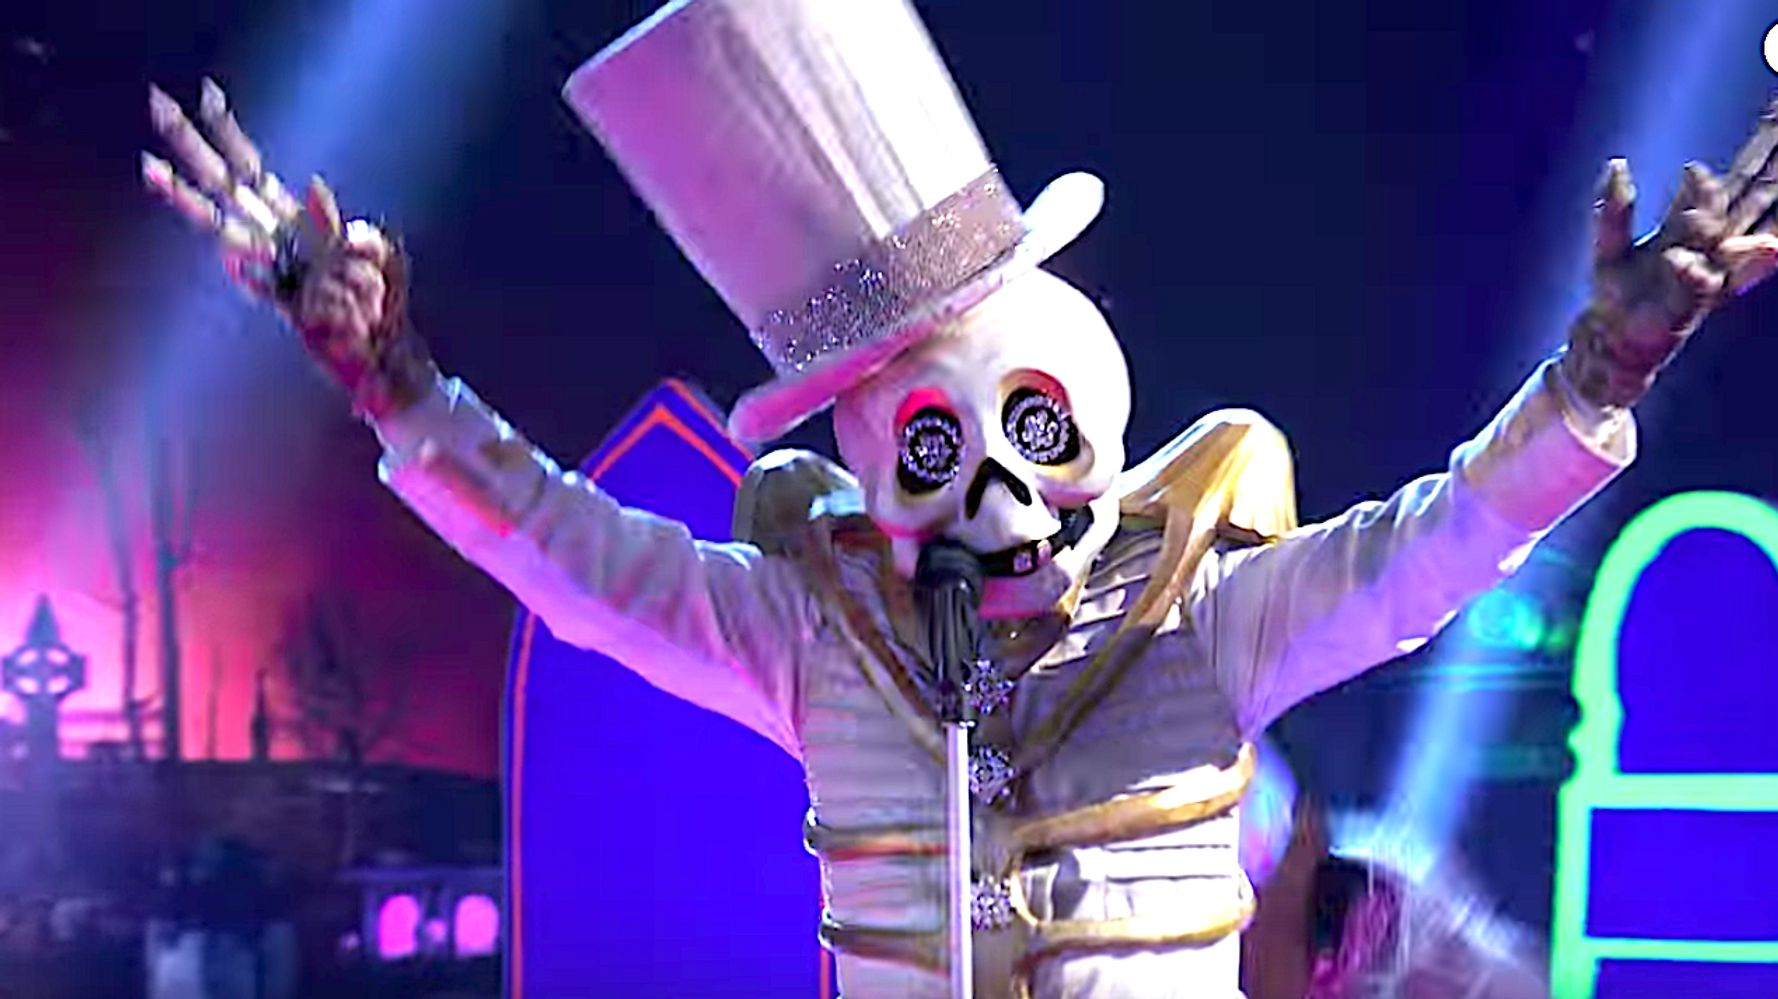 Westlake Legal Group 5da836362000000210505f22 'The Masked Singer' Unmasks Skeleton And He's Bad To The Bone (Spoilers)